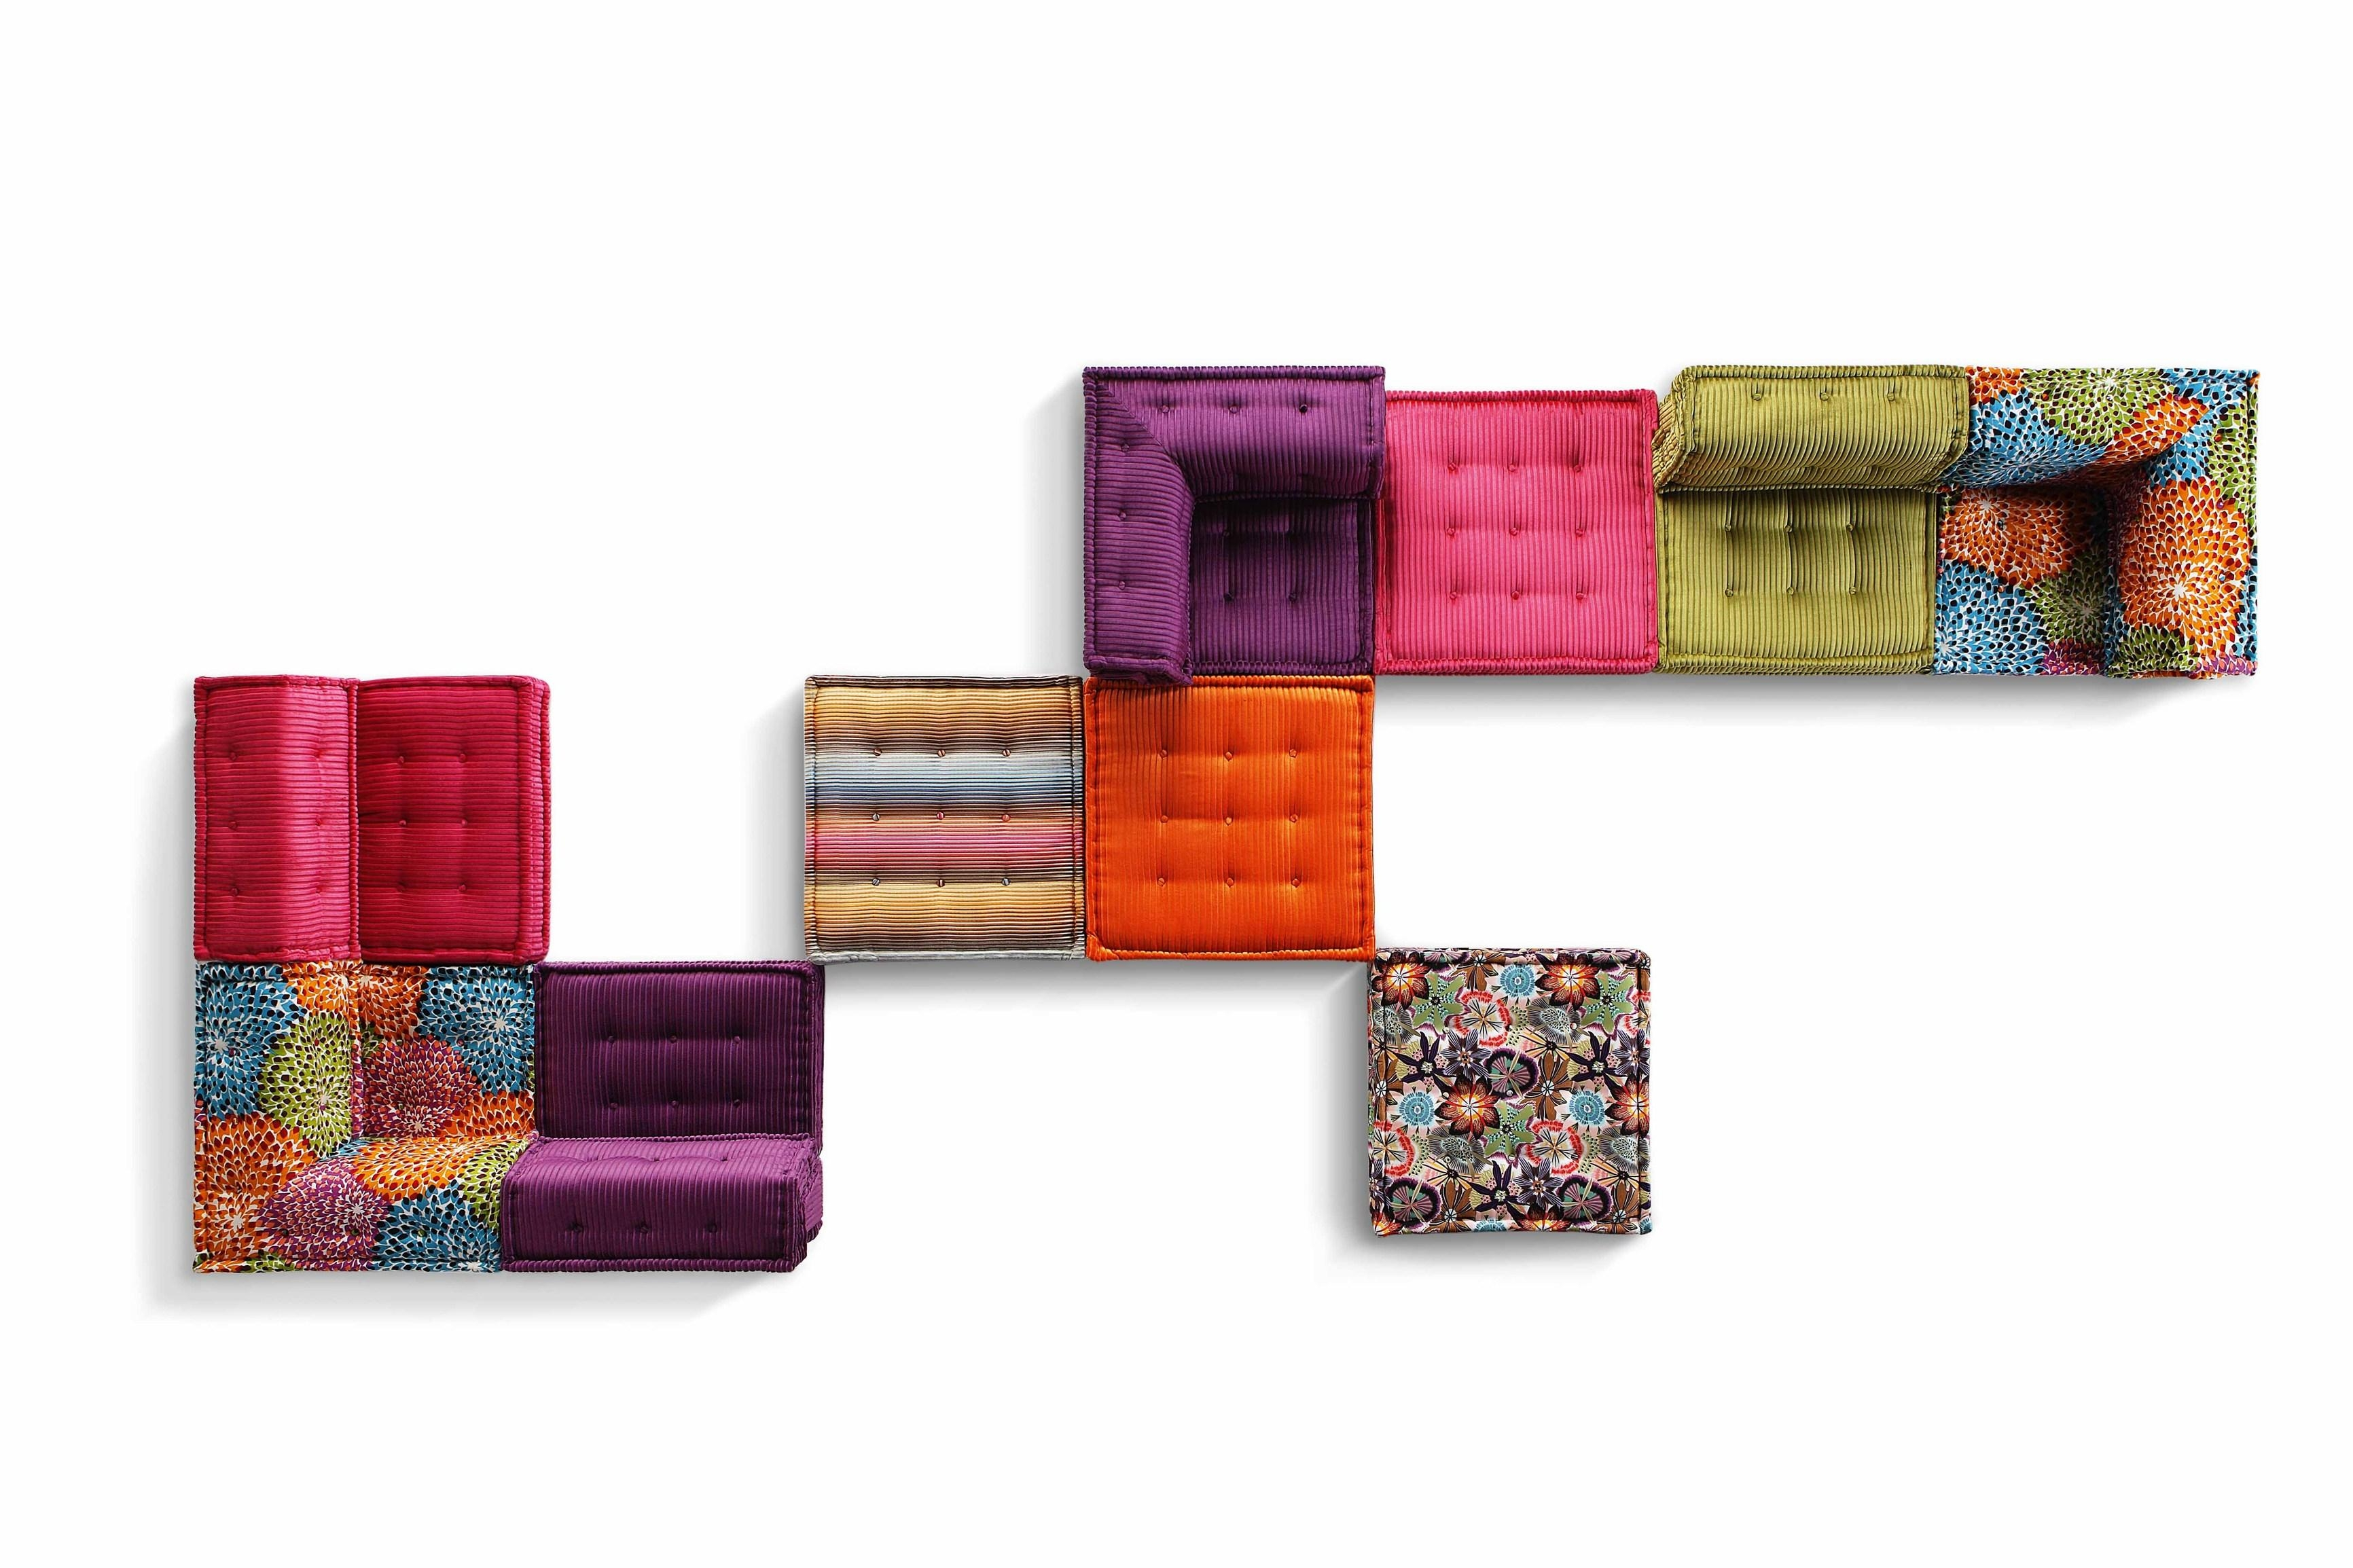 Sectional Fabric Sofa Mah Jong Missoni Homeroche Bobois Design Regarding Roche Bobois Mah Jong Sofas (View 9 of 20)